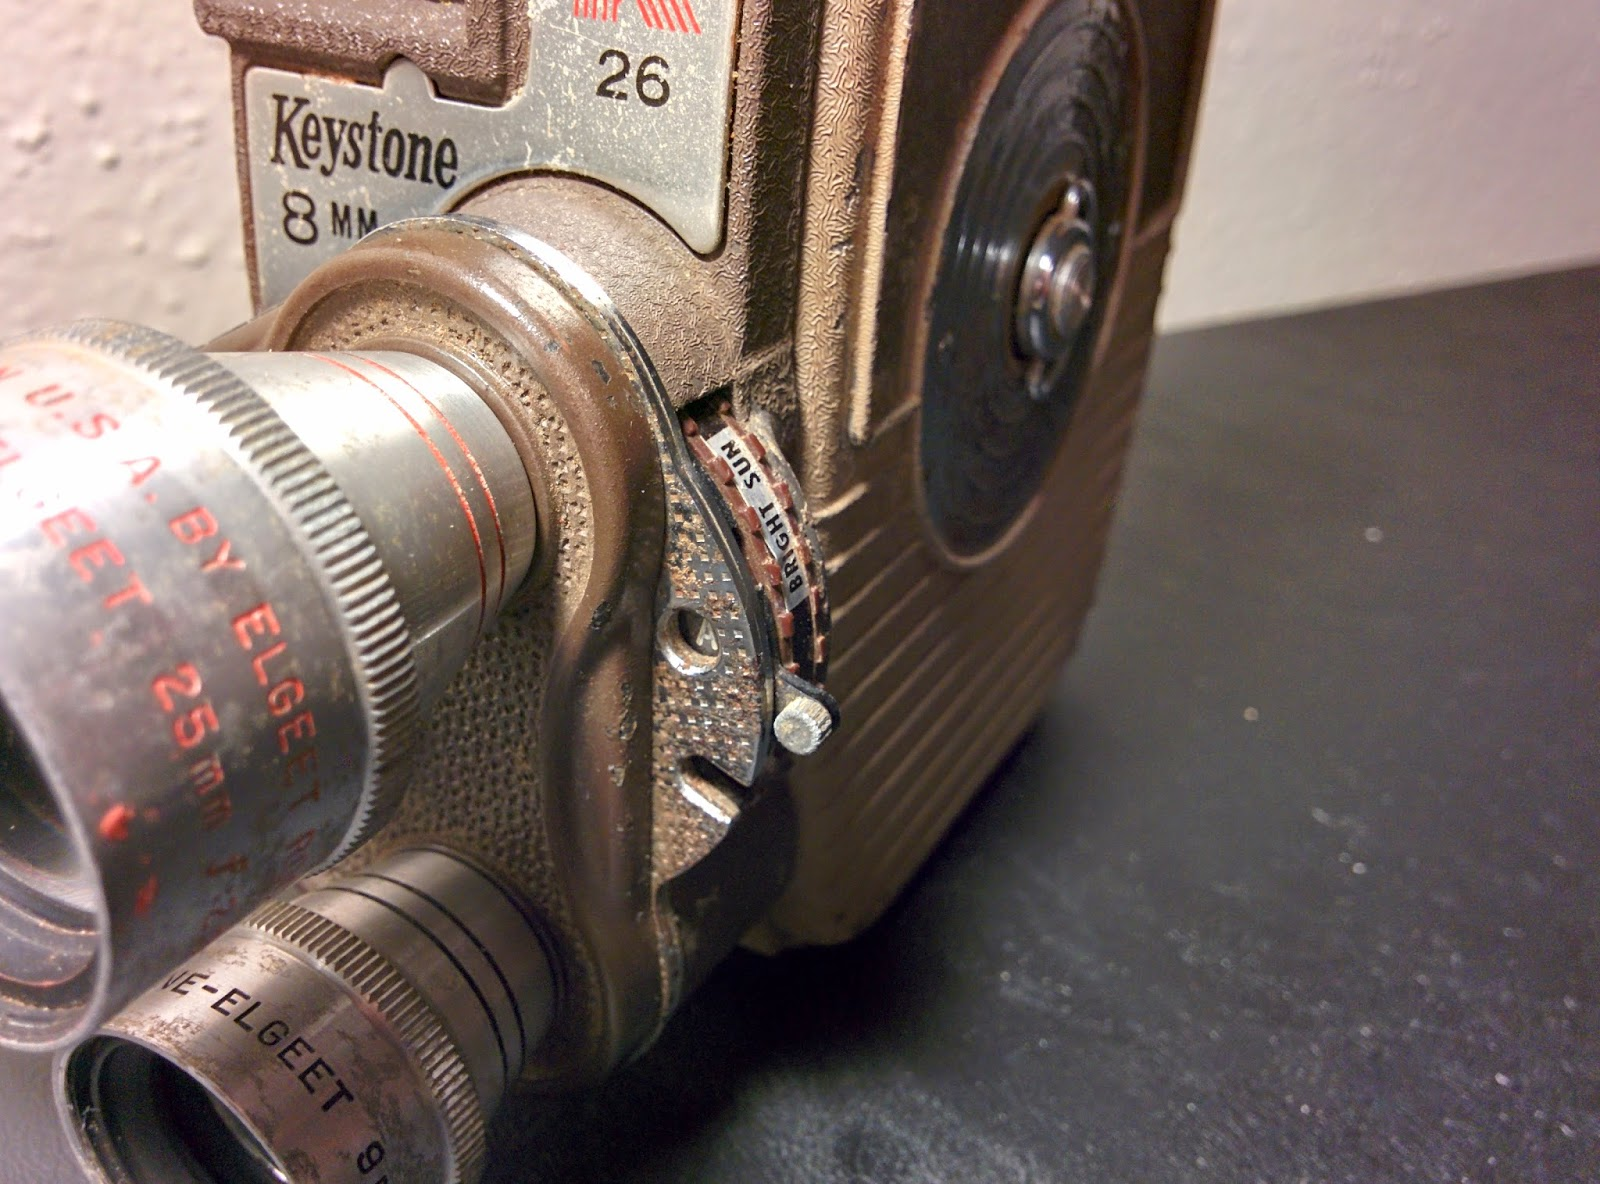 Retro Tech!: 1958: Keystone K26 8mm Camera